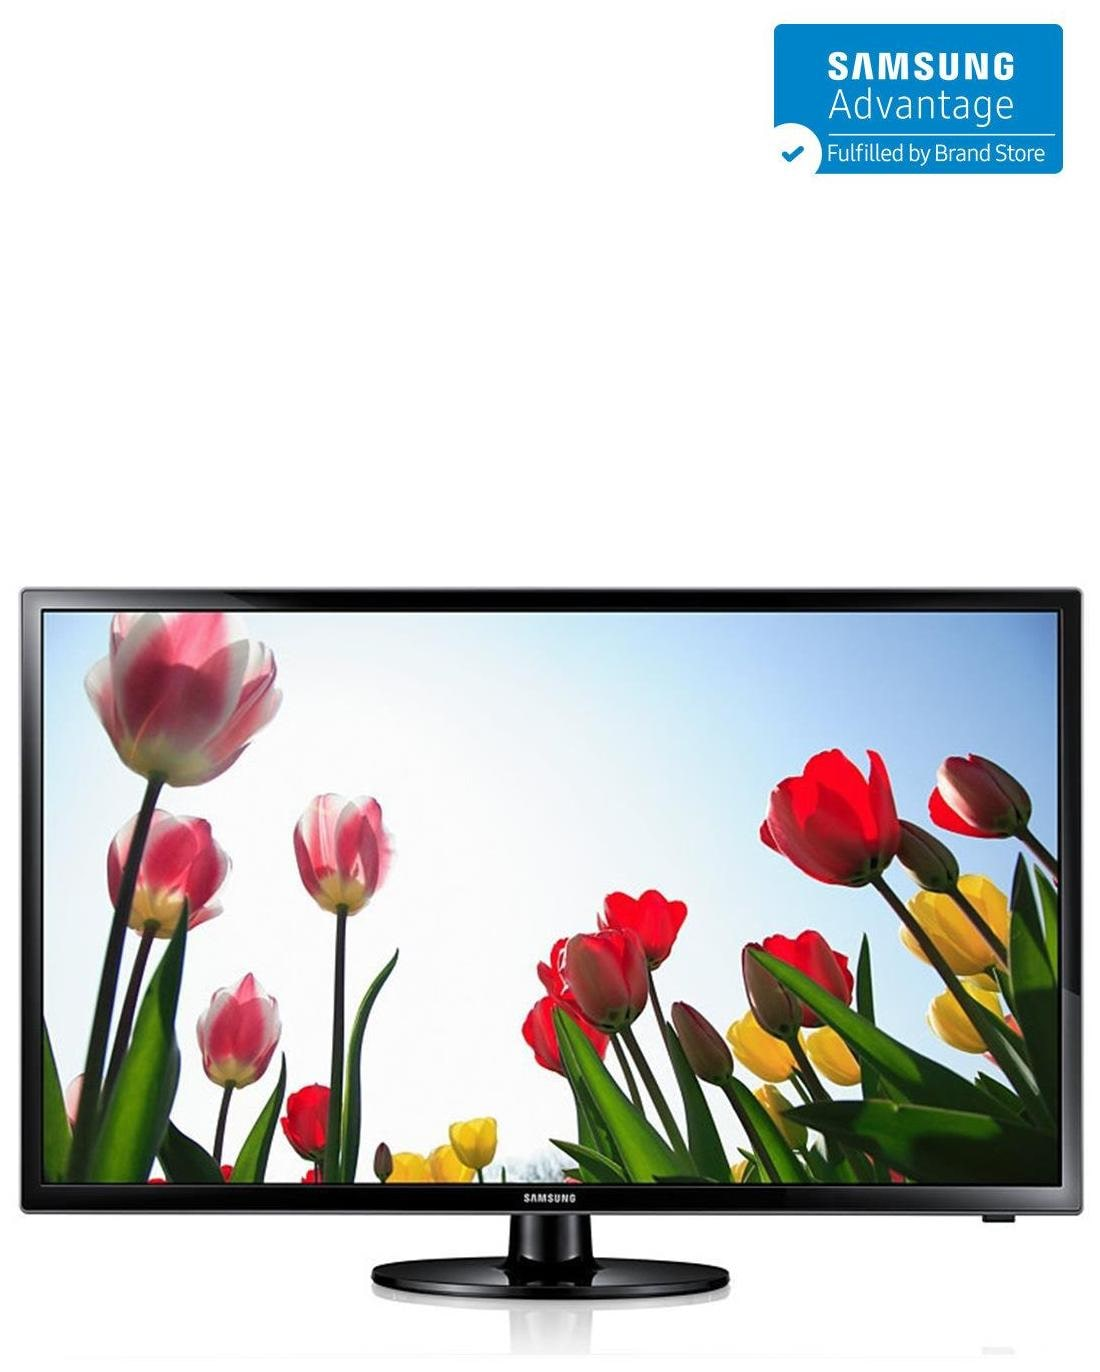 SAMSUNG 24H4003 24 Inches HD Ready LED TV